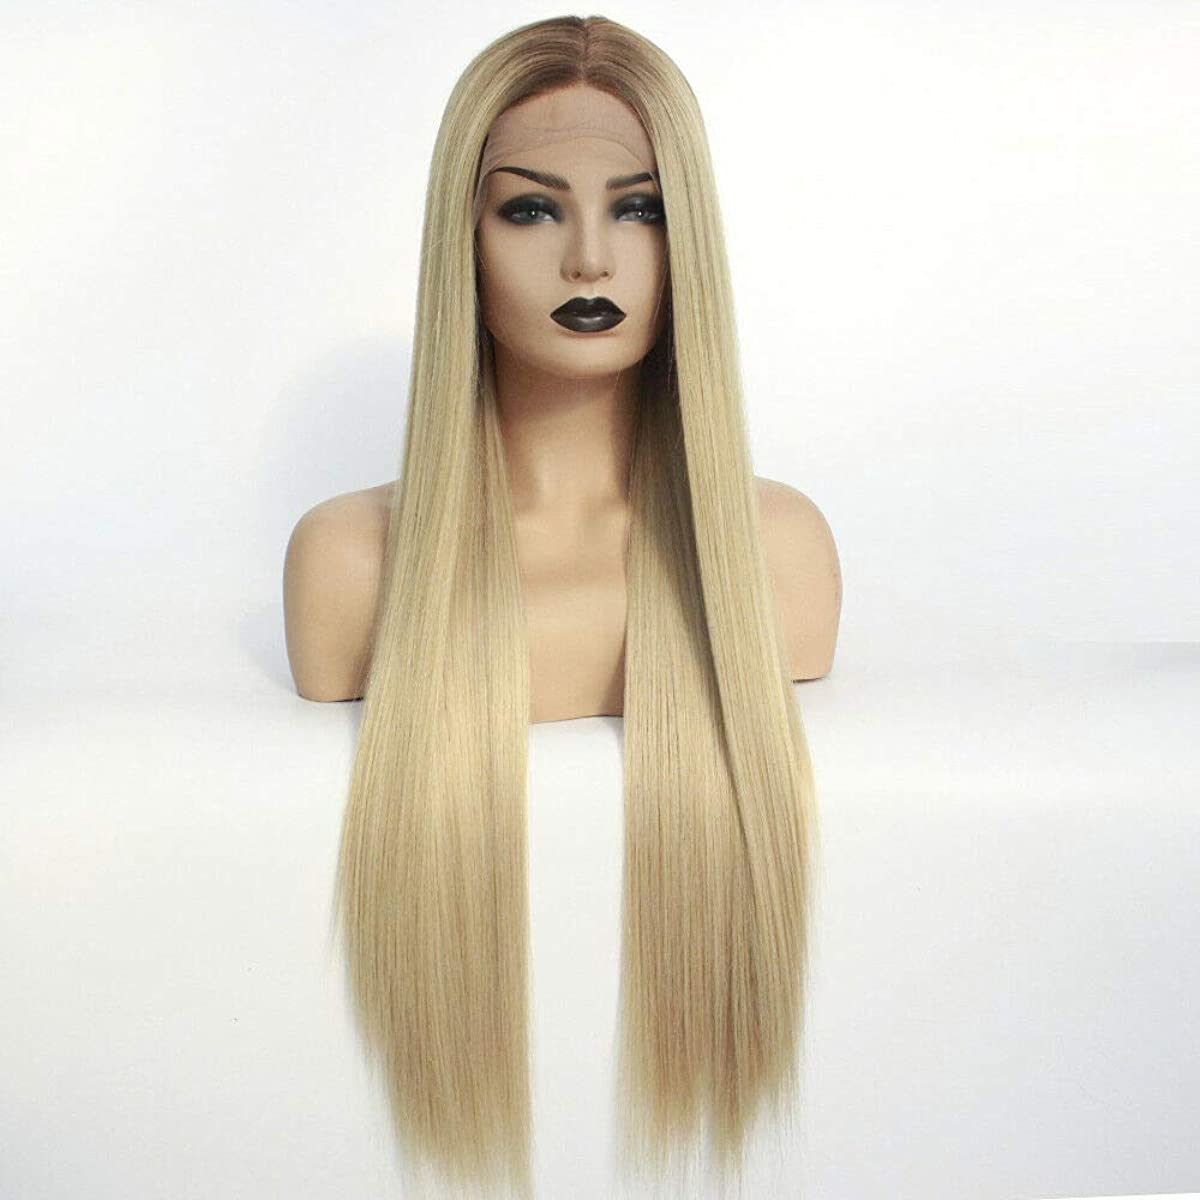 Colorfulwigs Ombre Brown Blonde 613 Synthetic Lace Front Wig for Black Women Long Straight 2T 180% Density Fluffy Natural Heat Resistant Hair Synthetic Hair Wigs (24inch)